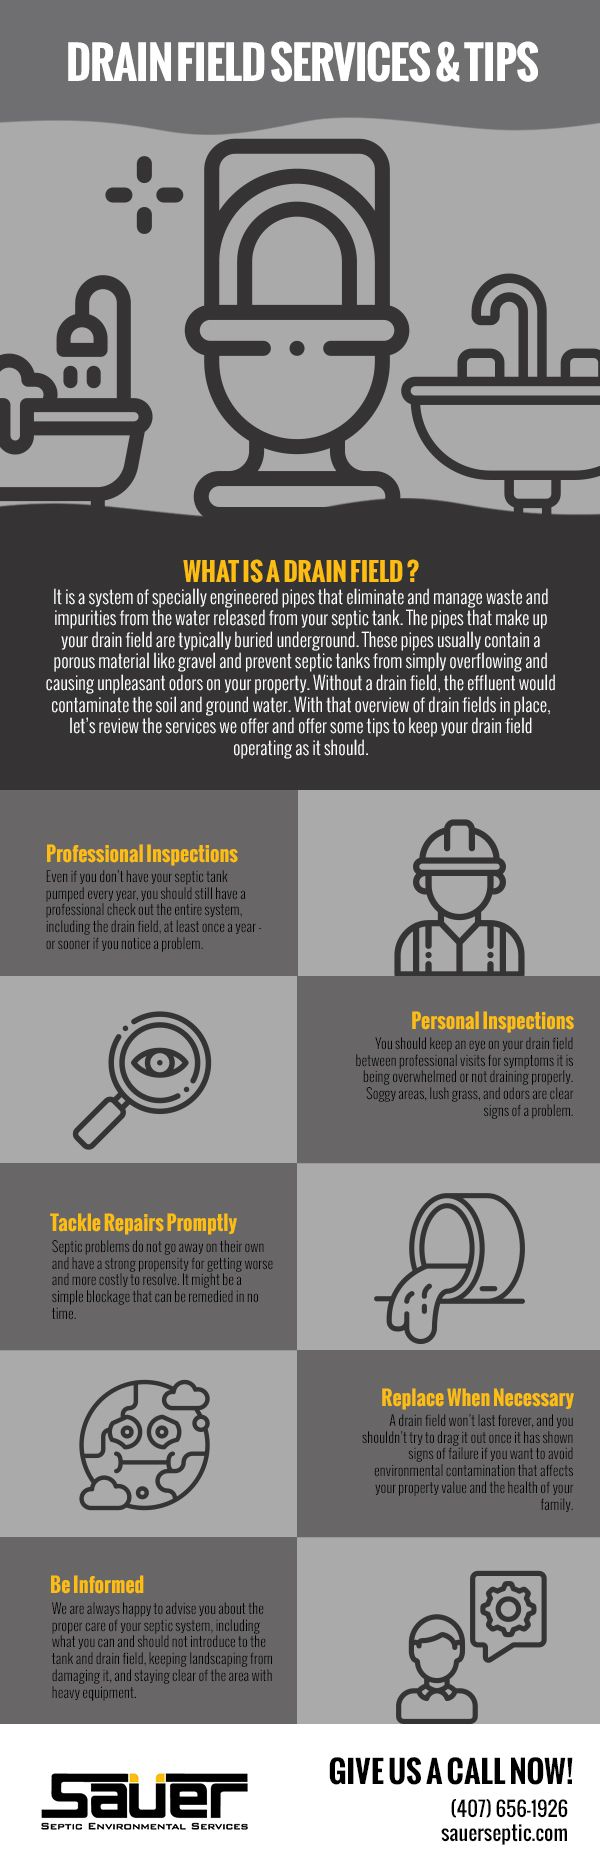 Drain Field Services & Tips [infographic]